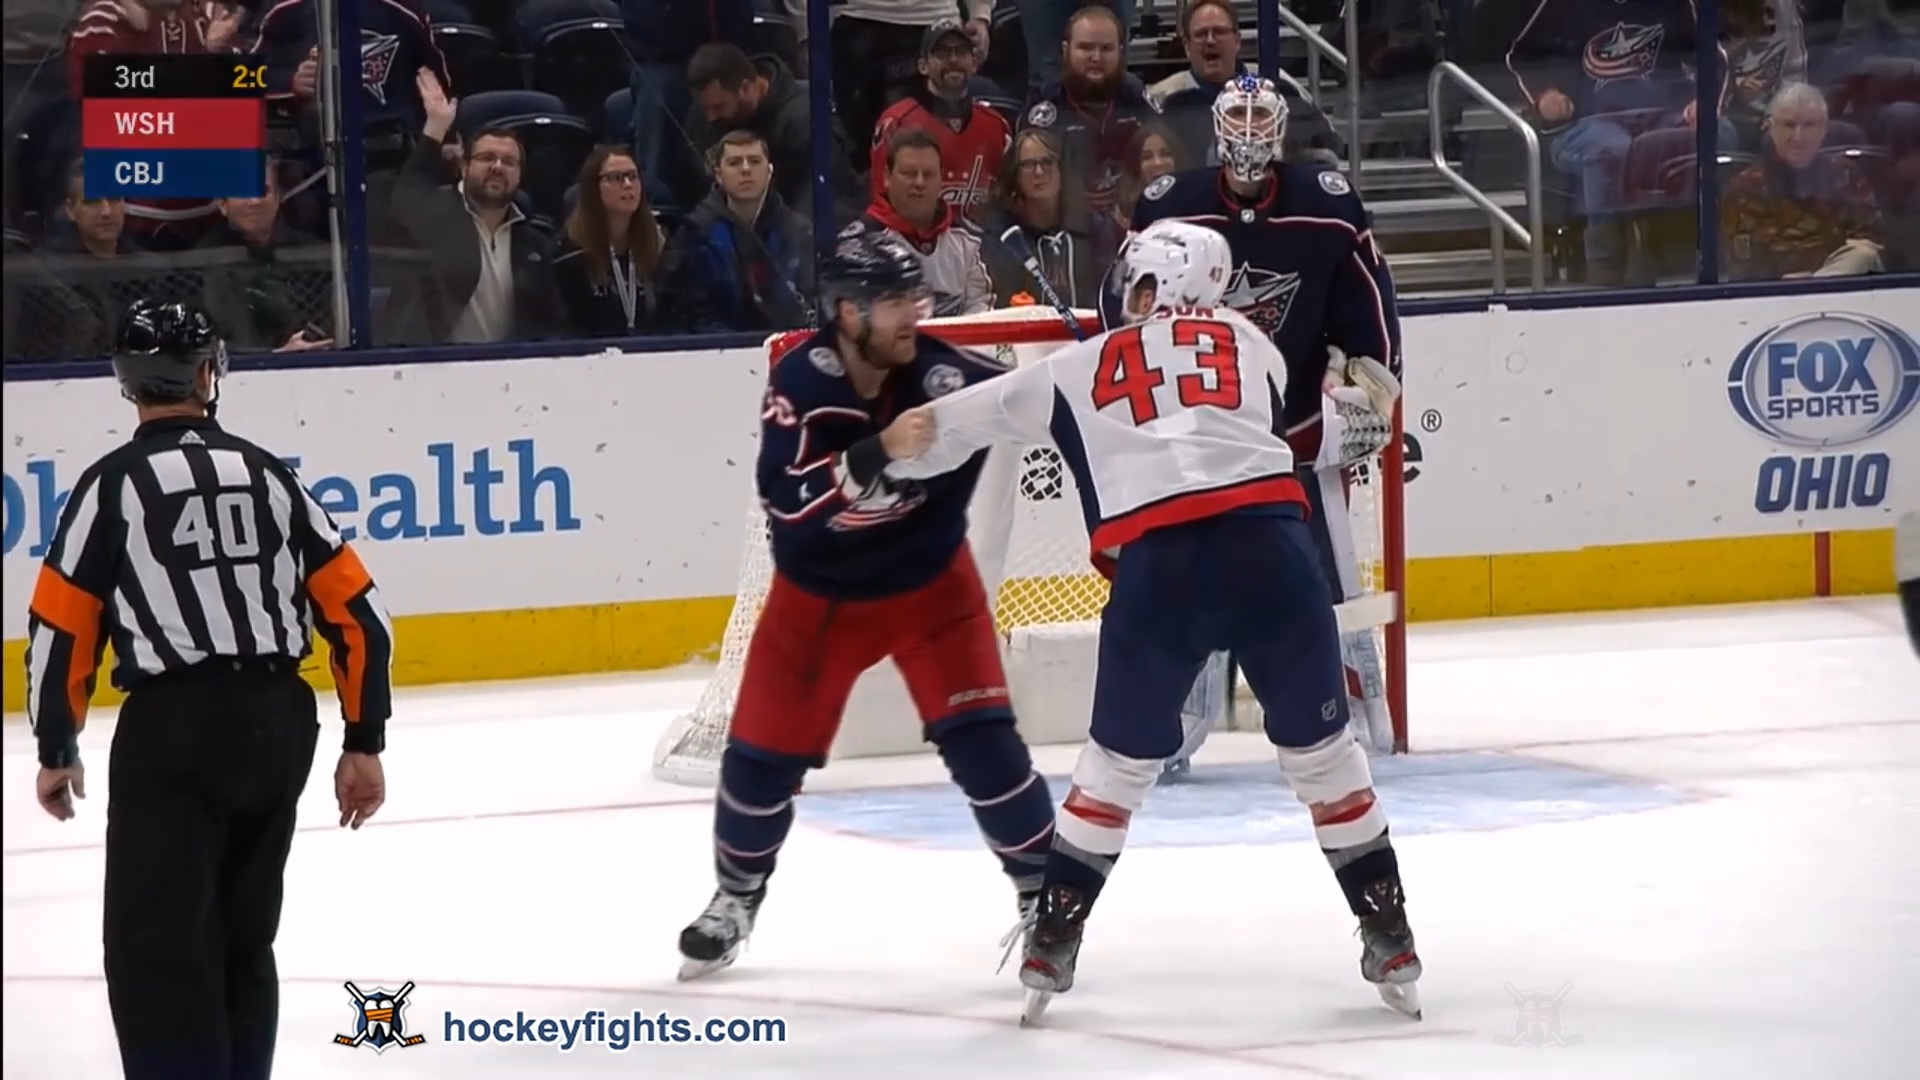 David Savard vs. Tom Wilson